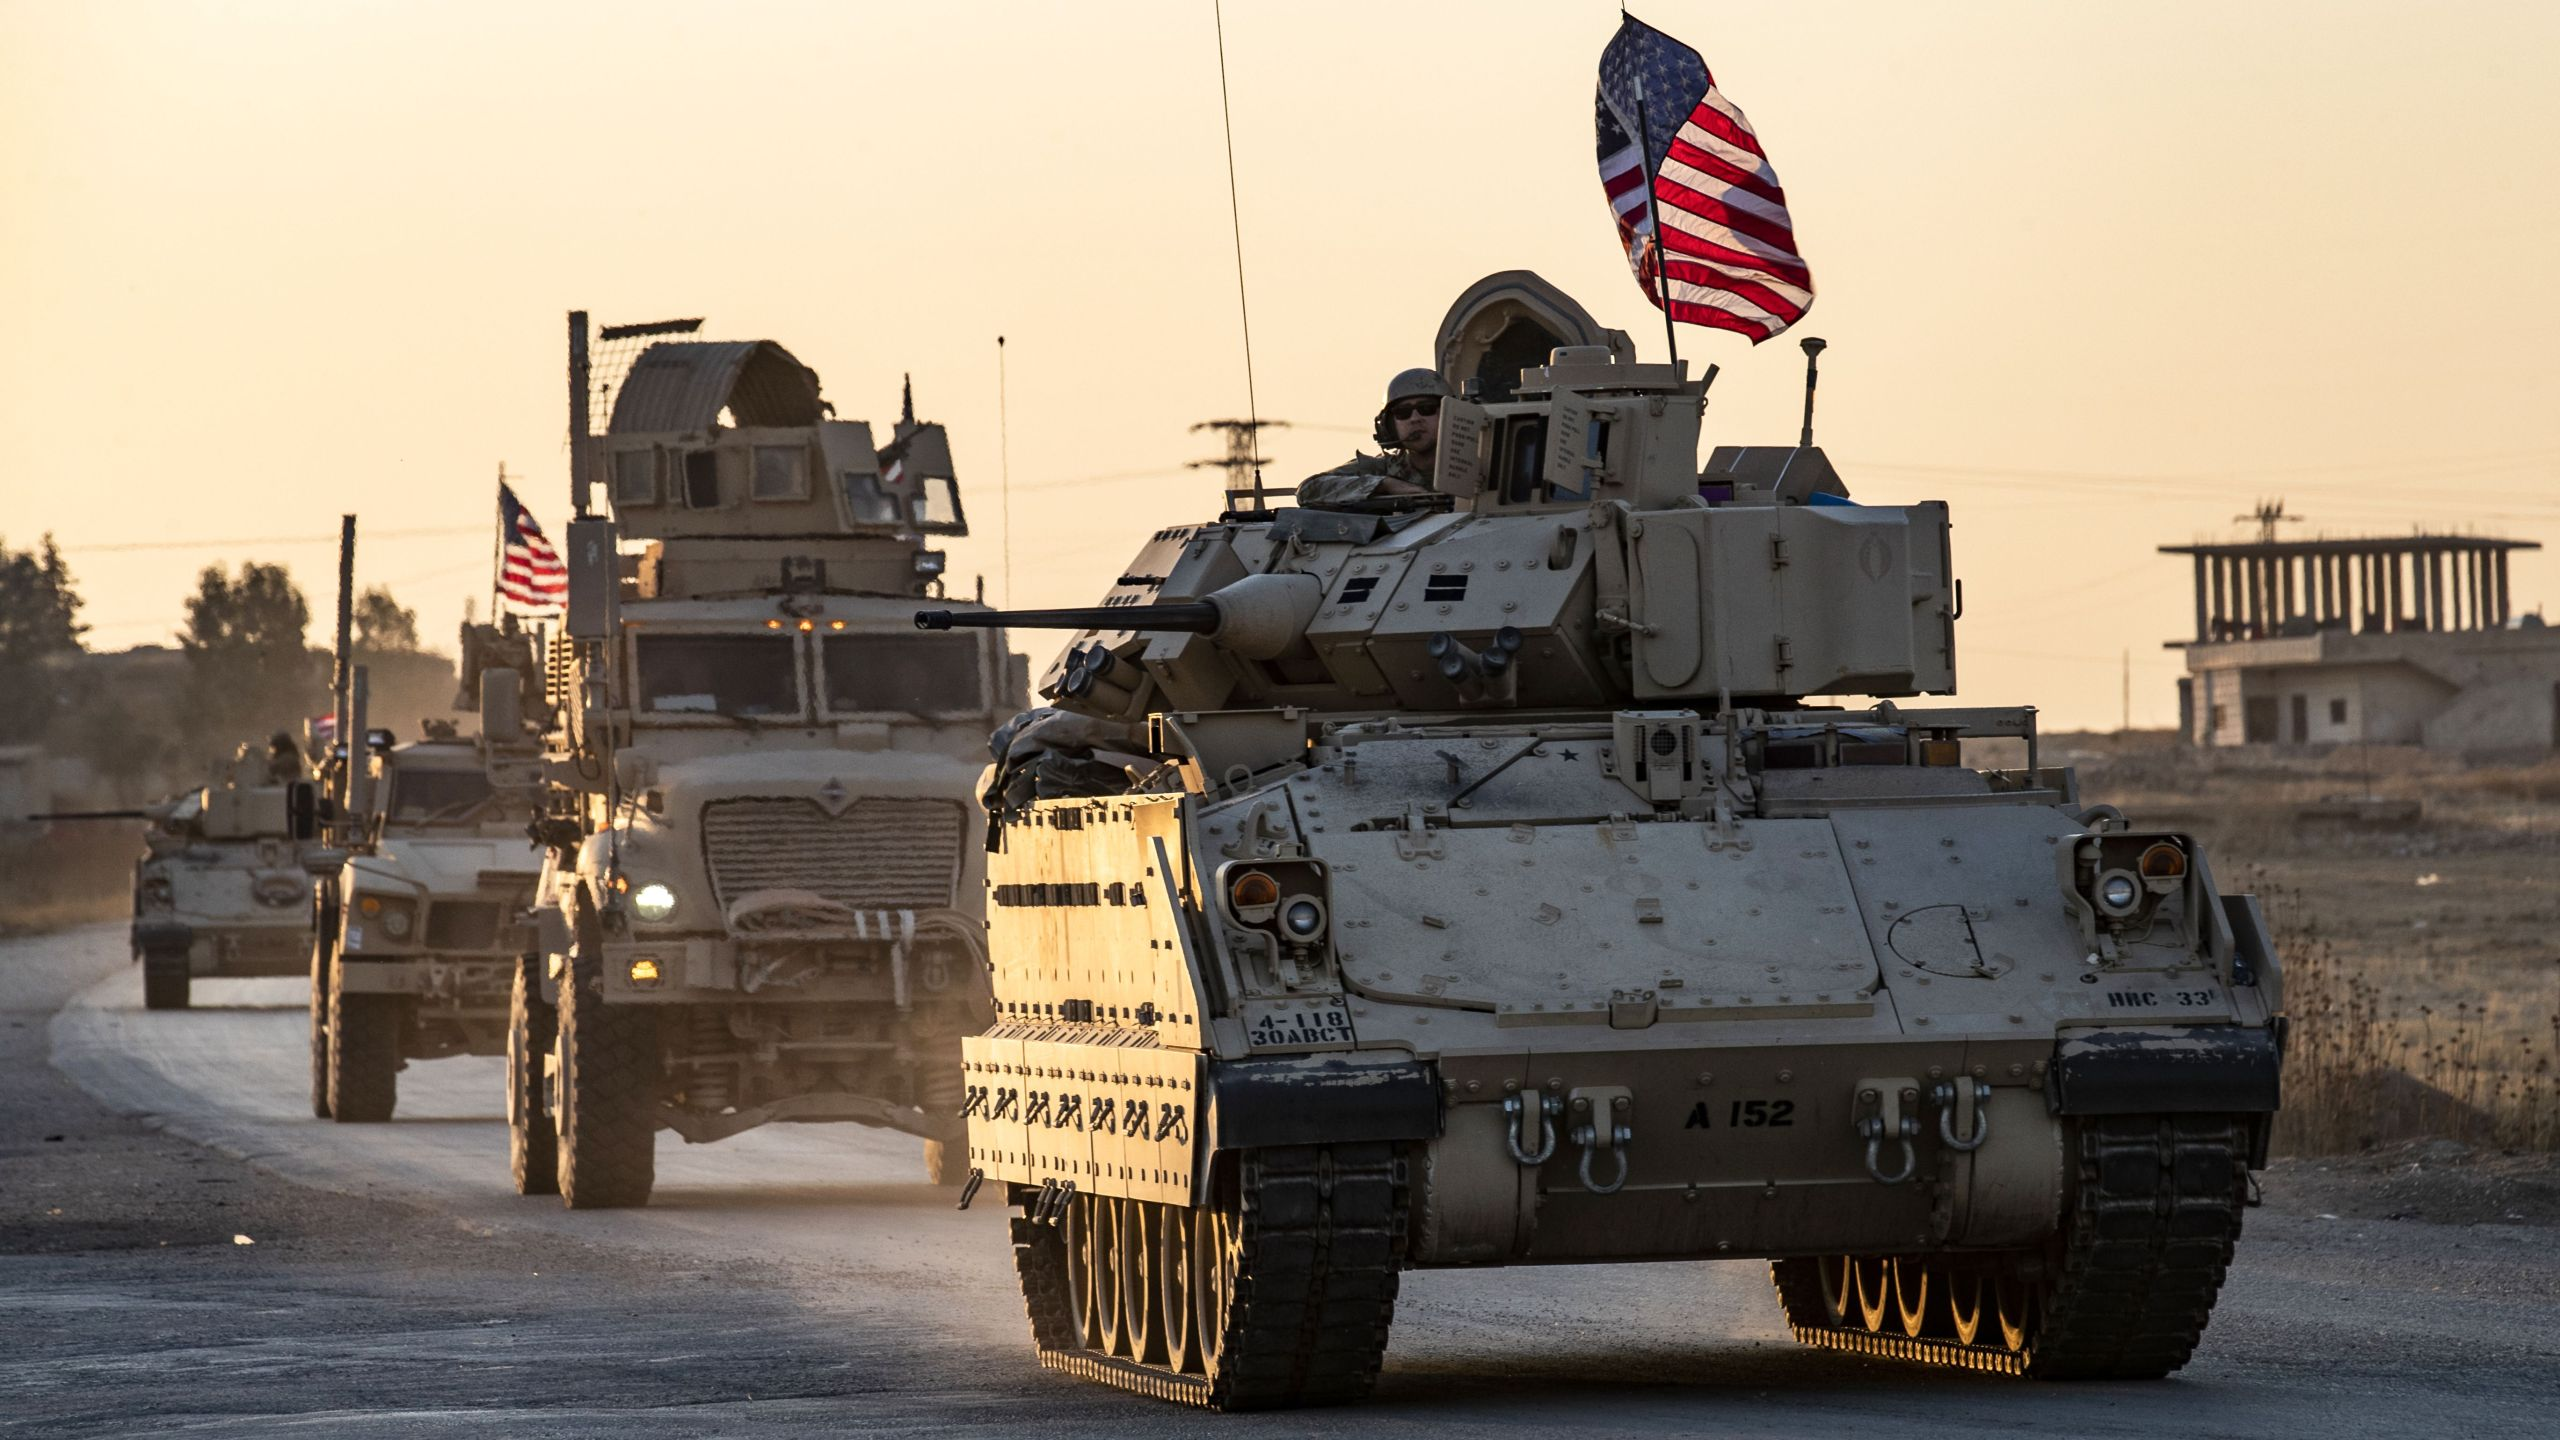 A convoy of U.S. military vehicles drives near the town of Tal Tamr in the northeastern Syrian Hasakeh province, on the border with Turkey, on Nov. 10, 2019. (Credit: Delil Souleiman / AFP / Getty Images)